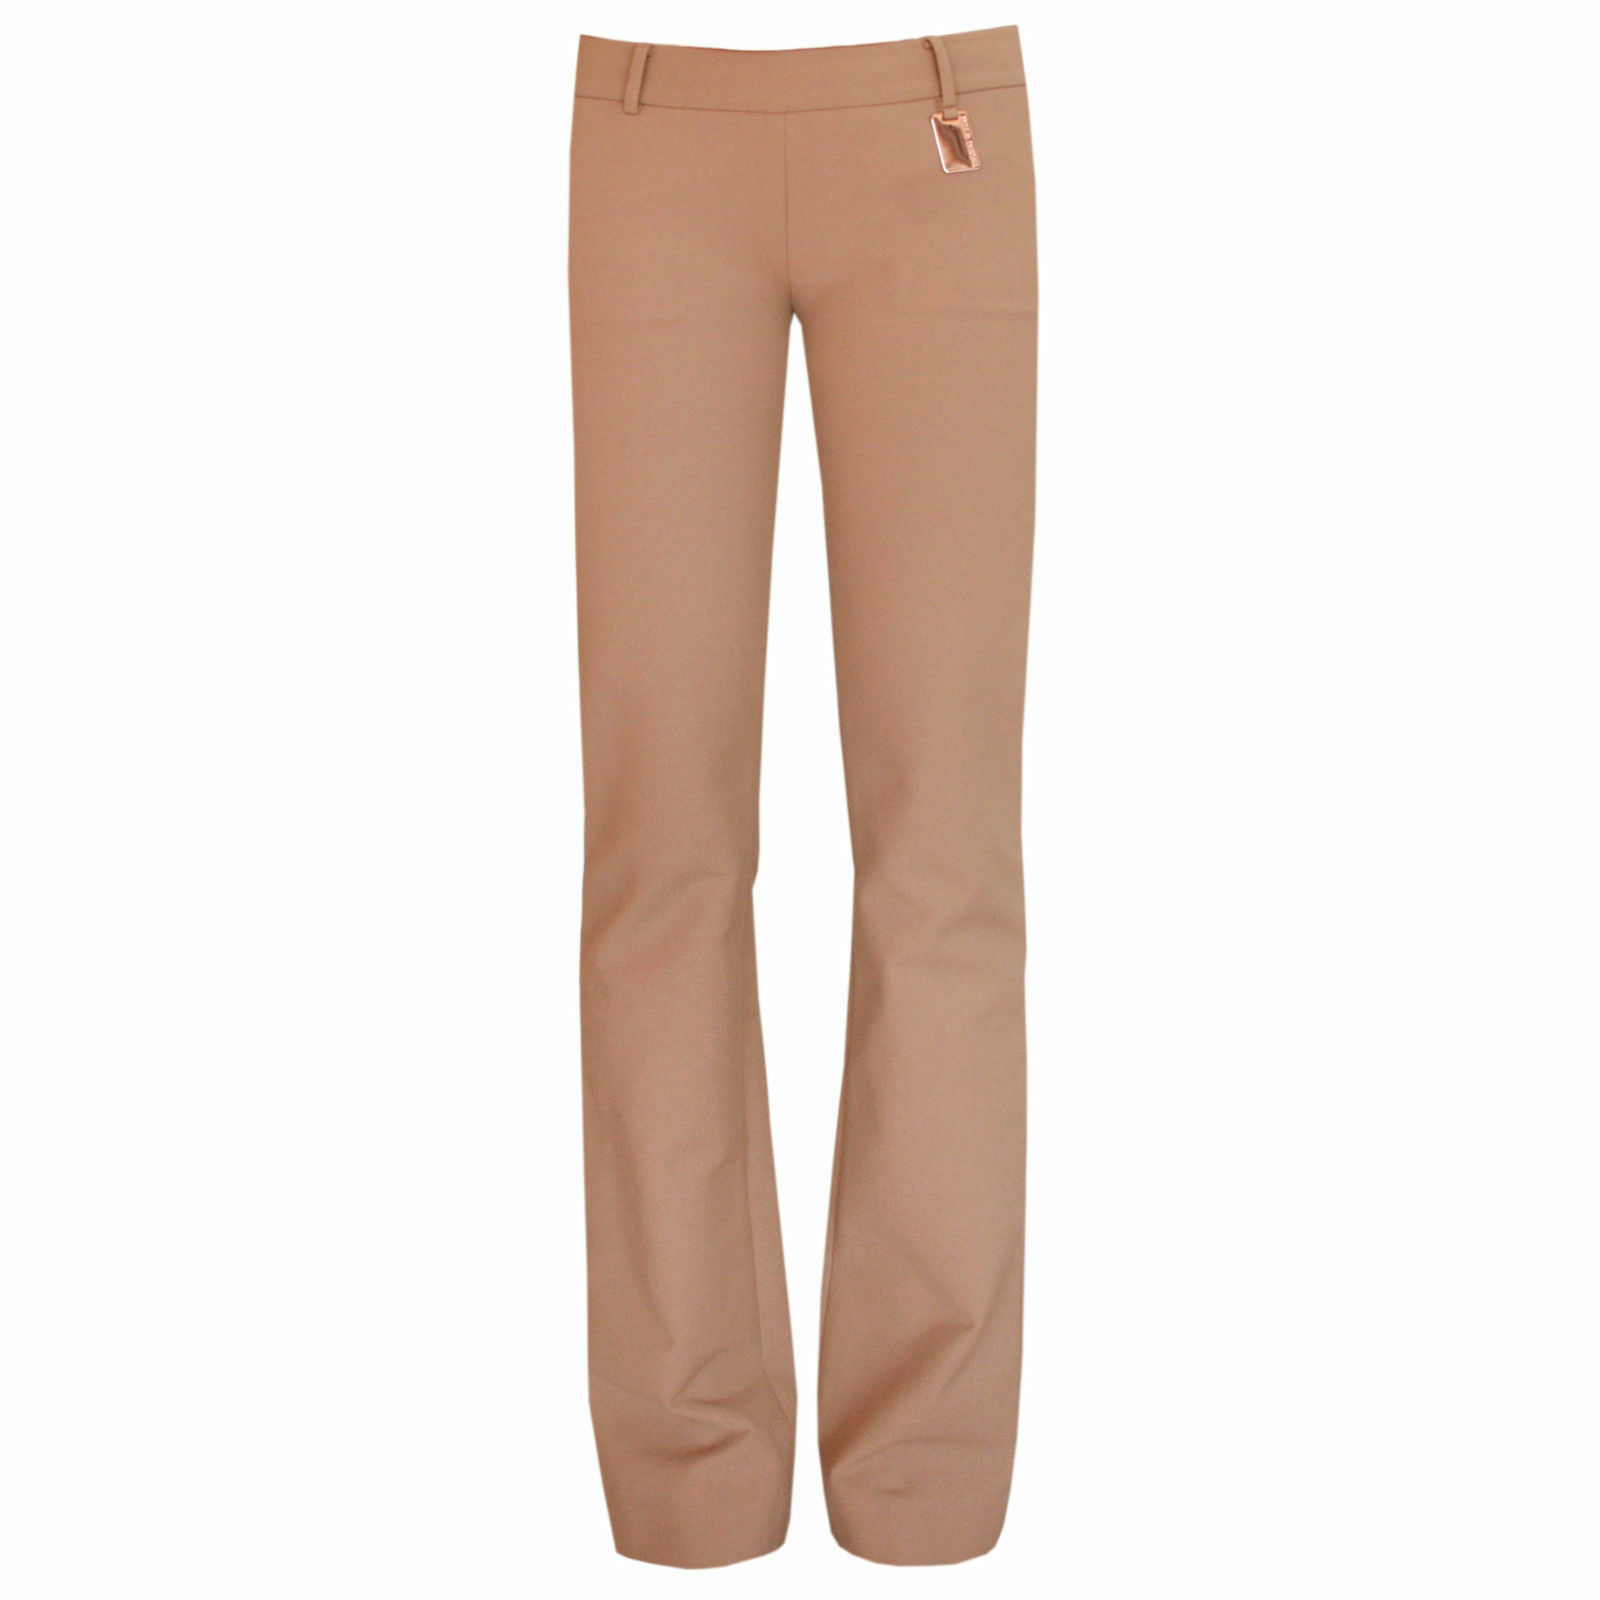 THOMAS WYLDE ,225 fitted straight leg Running Pants light brown trousers 2 NEW